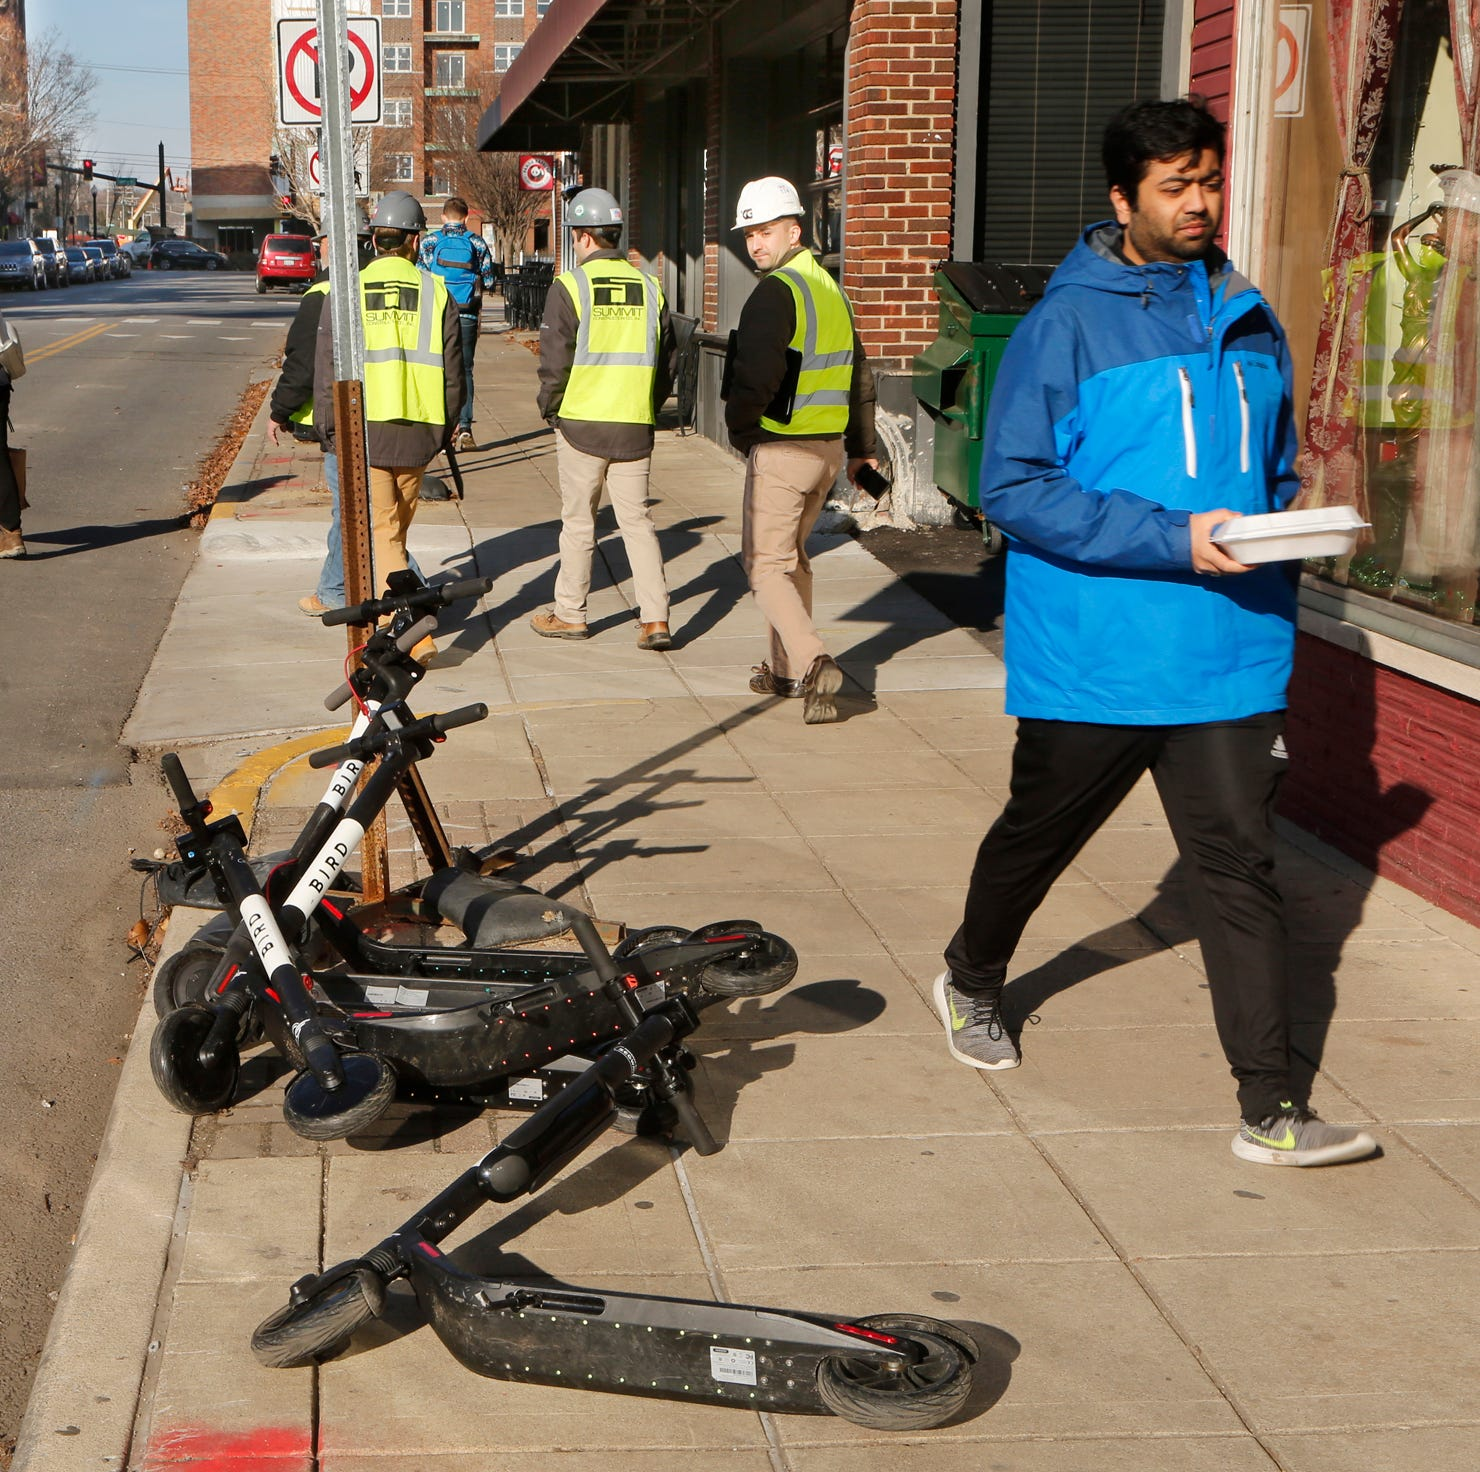 Bird scooters: West Lafayette resorts to towing as promises fall flat near Purdue